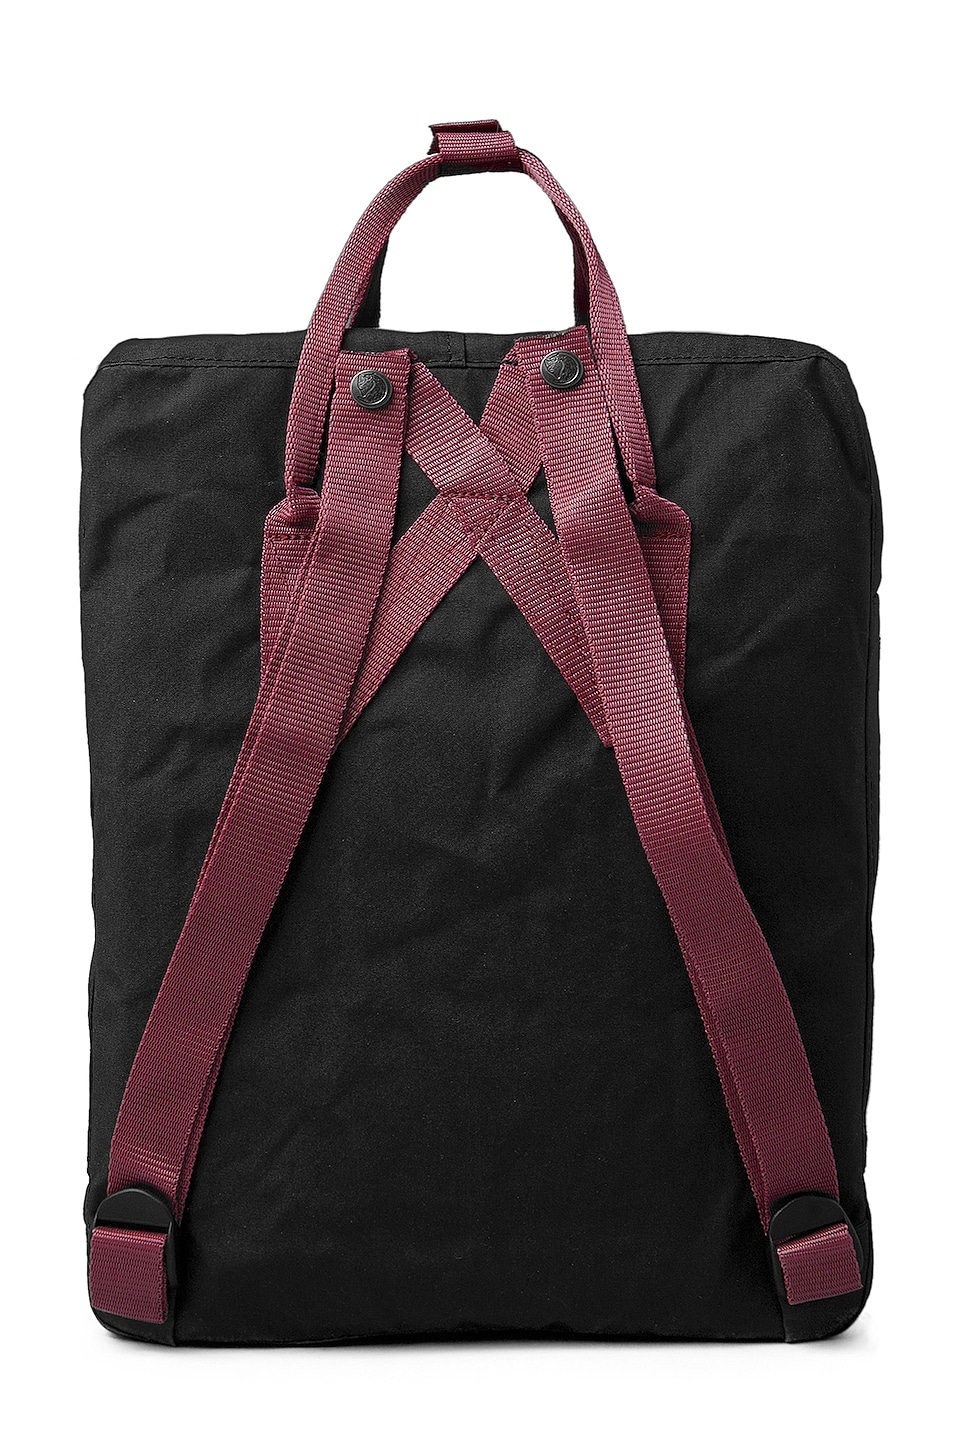 Fjallraven Kanken in Black & Ox Red